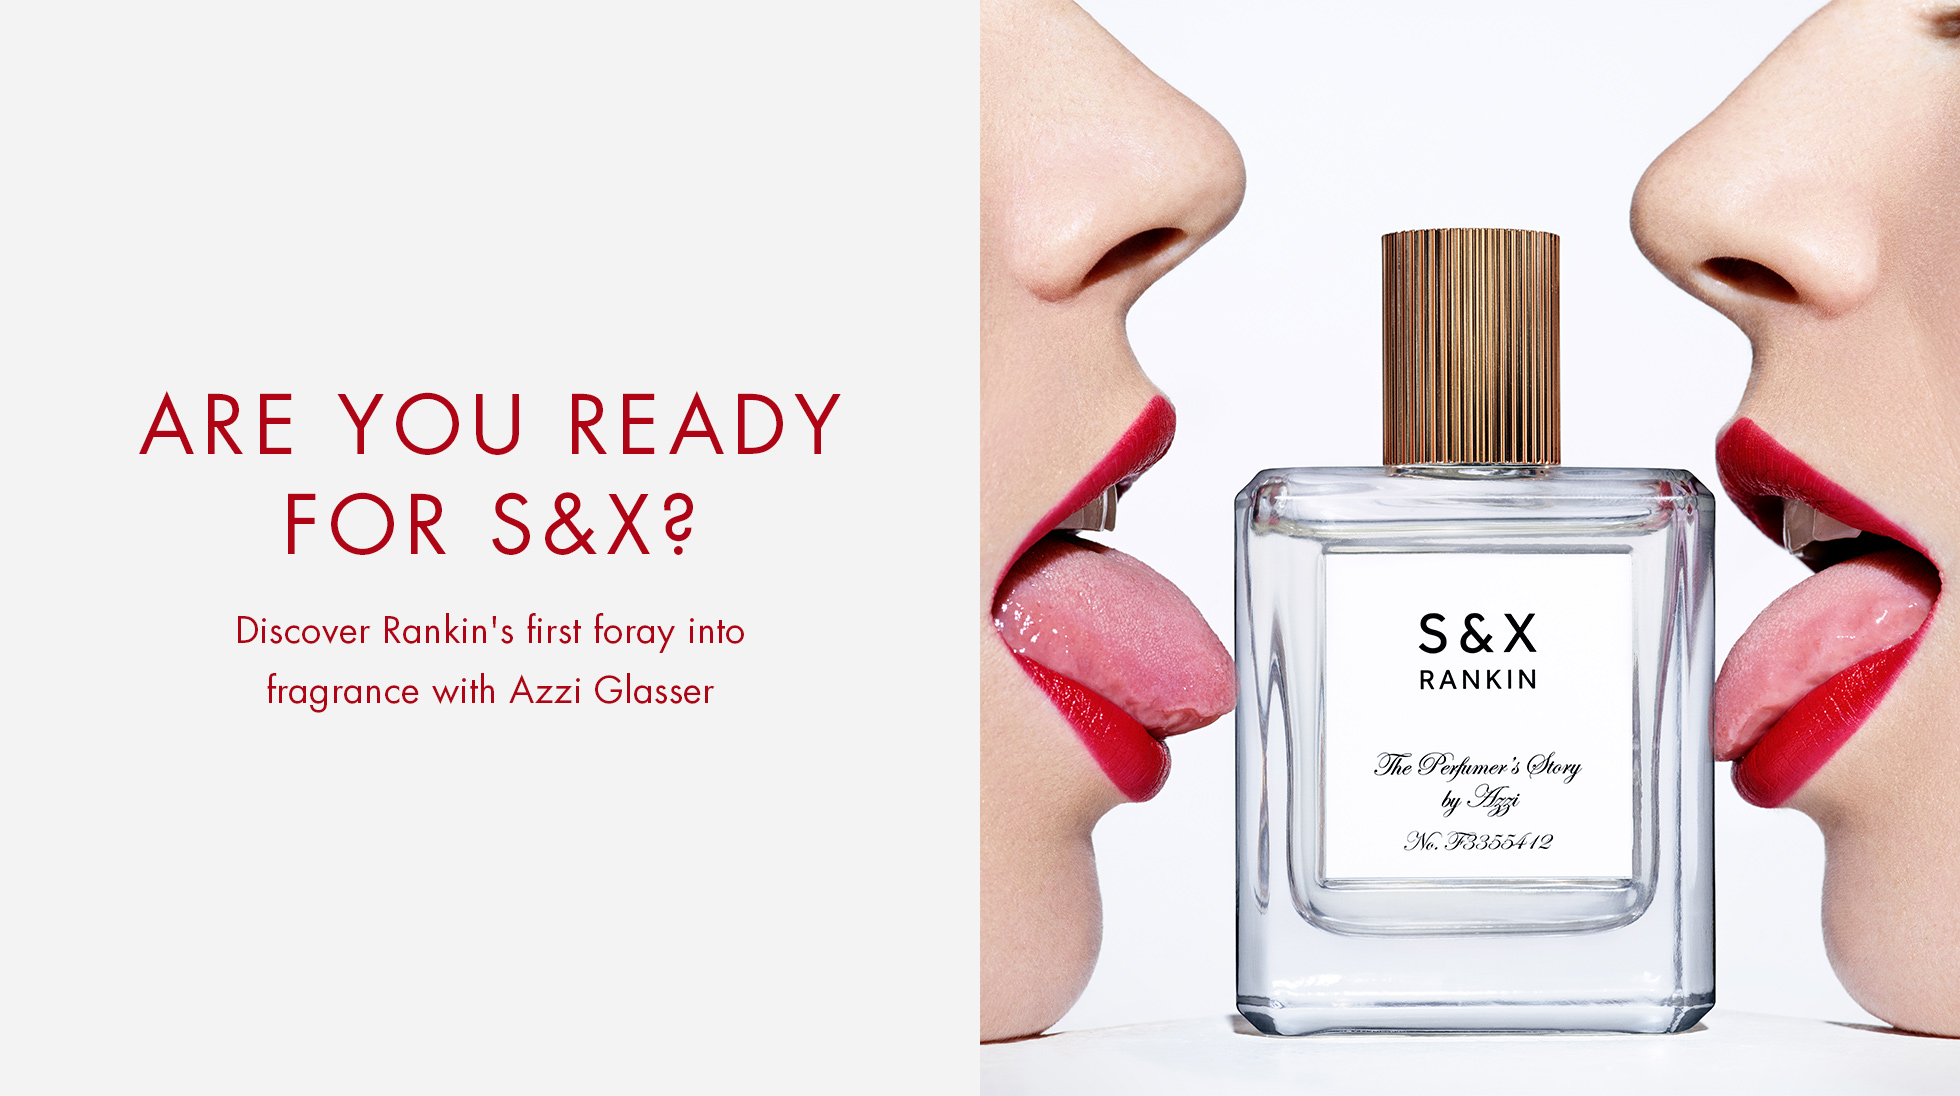 ARE YOU READY FOR S&X?